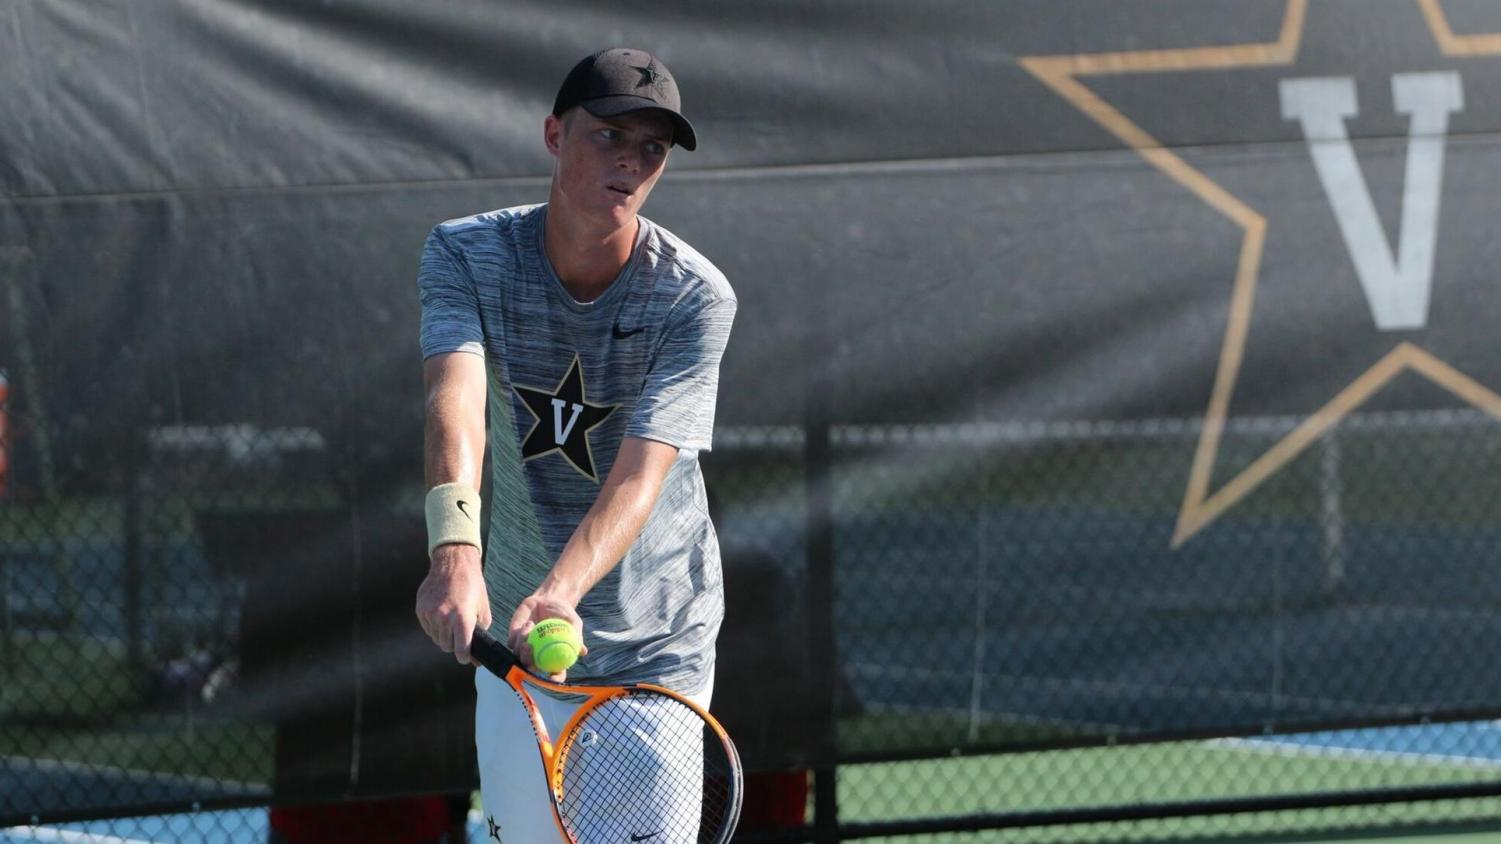 Marcus Ferreira gets ready to serve in his 6-2, 6-3 victory over Belmont's Arthur Toledo. Photo Credit VUCommodores.